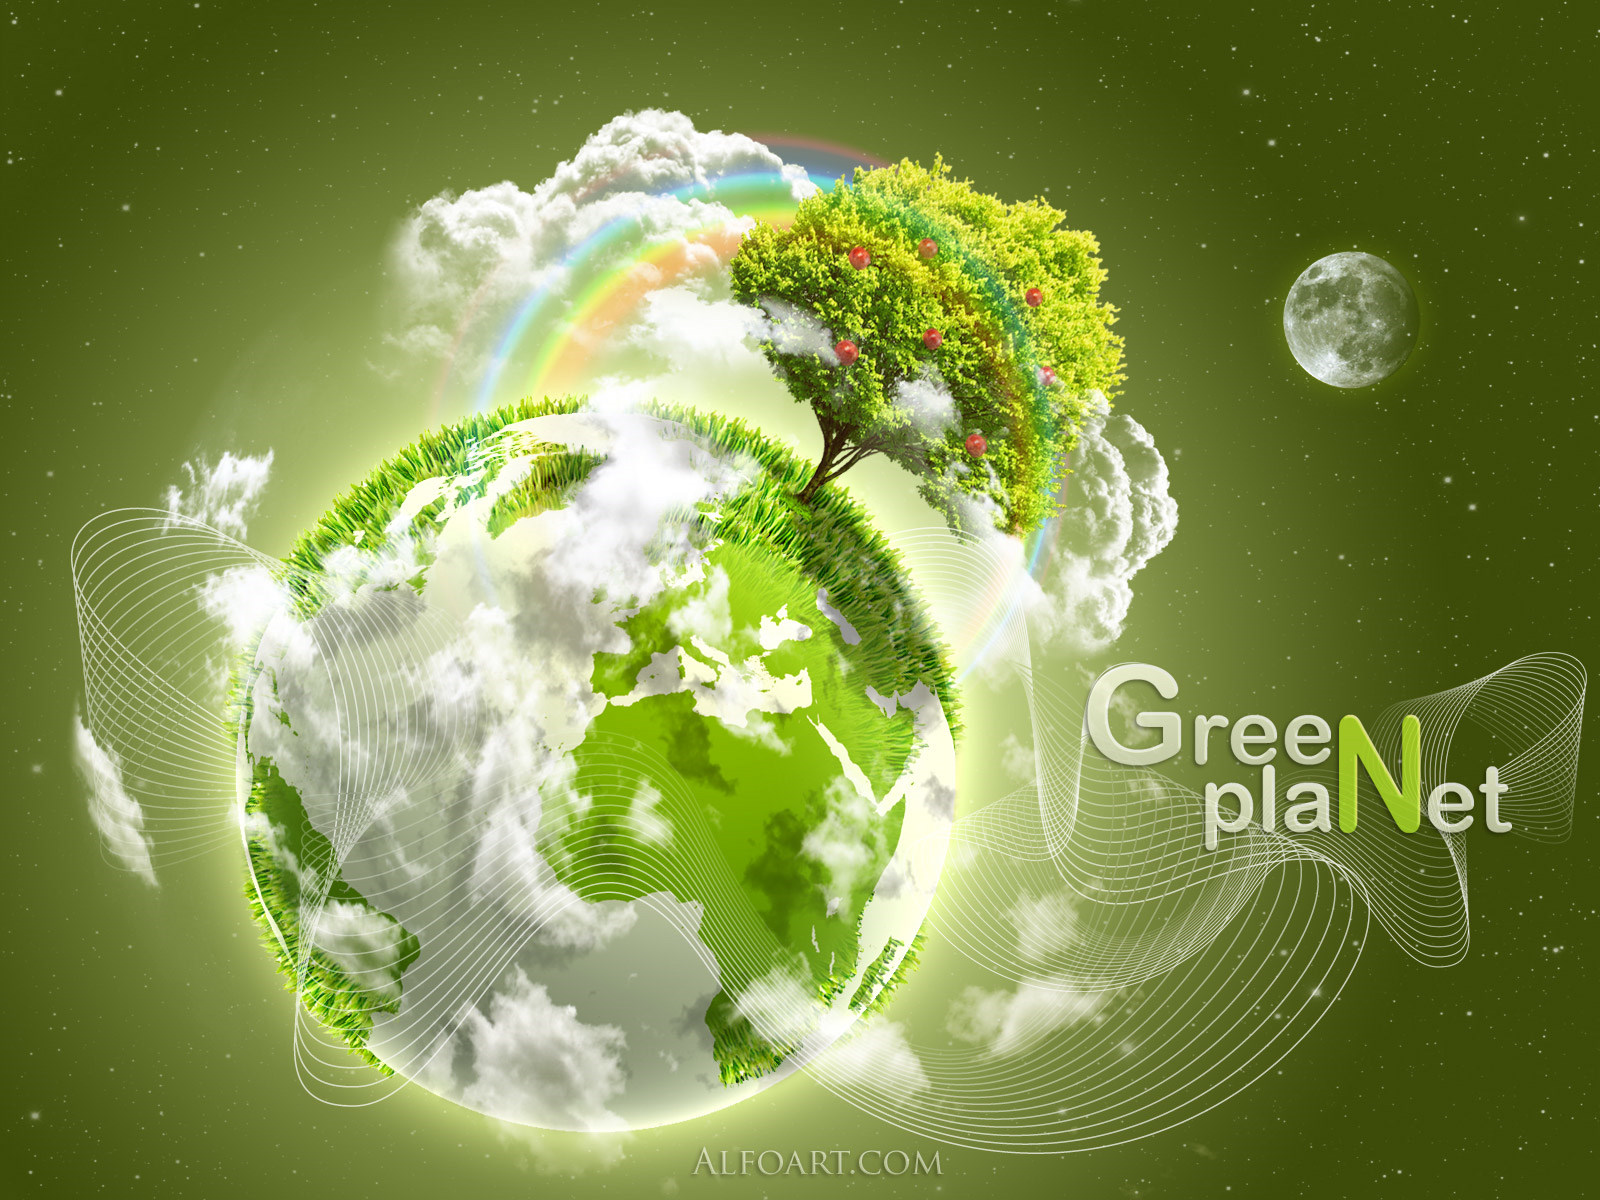 earthday_wallpapers_quotes_images_gogreen_environmental(www.picturespool.blogspot.com)_03.jpg (1600×1200)